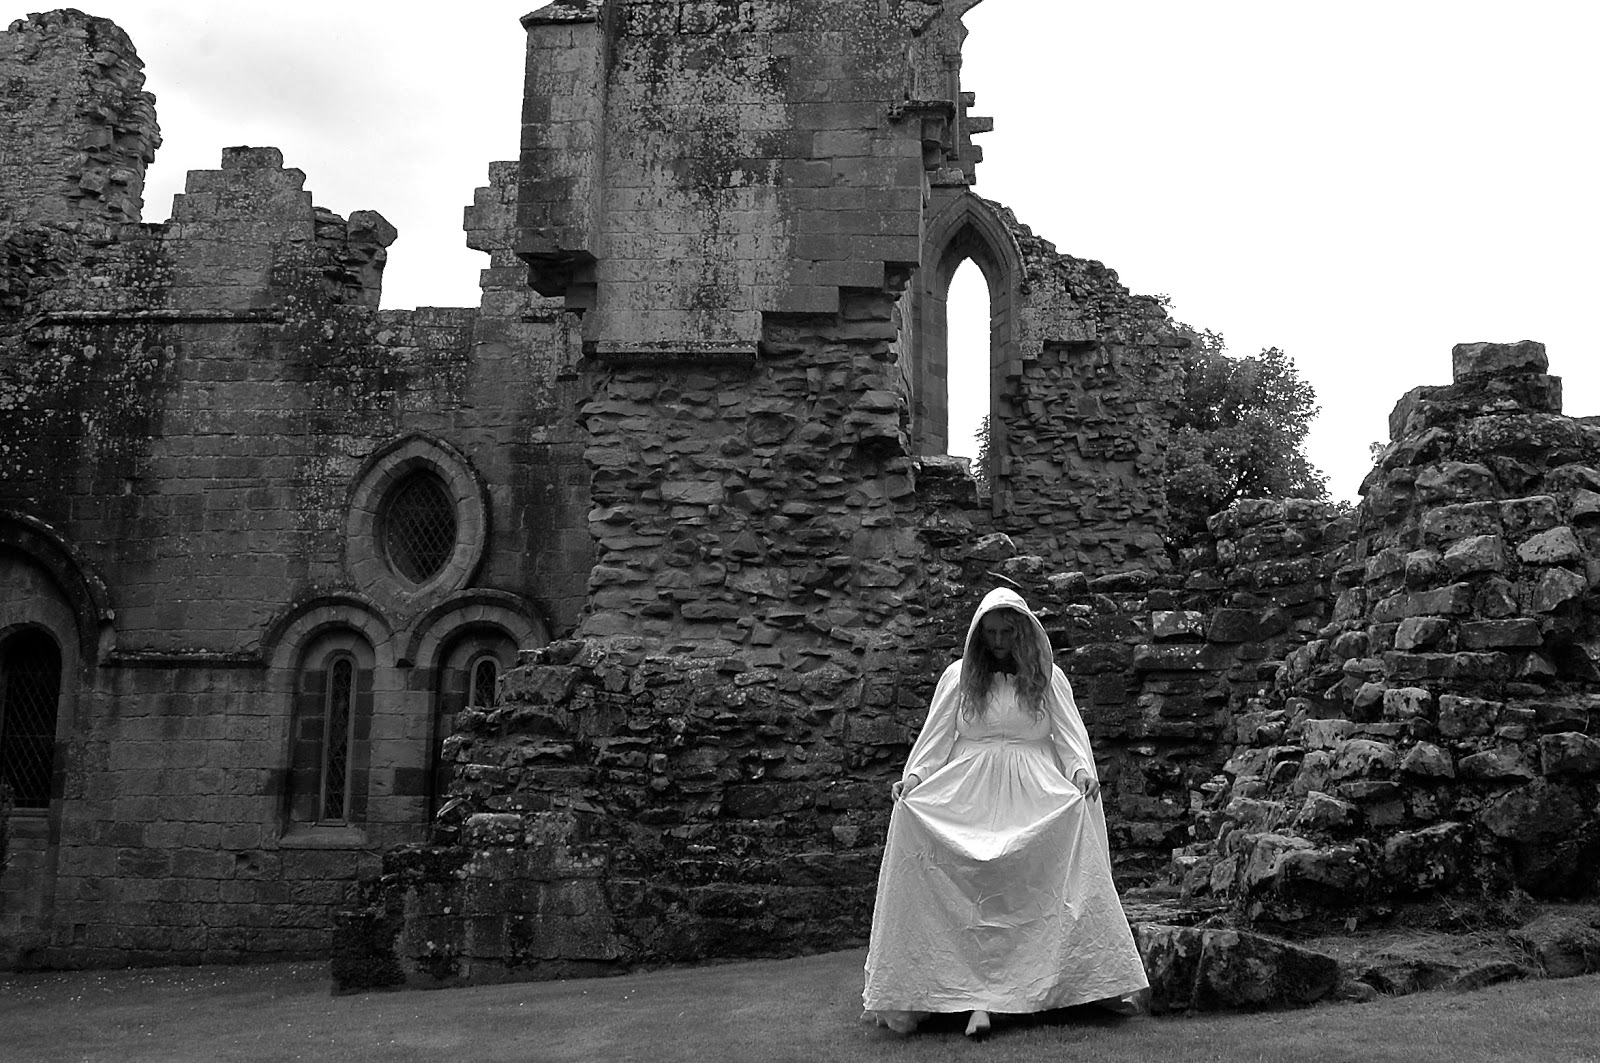 Performance art in Dryburgh Abbey, Scotland